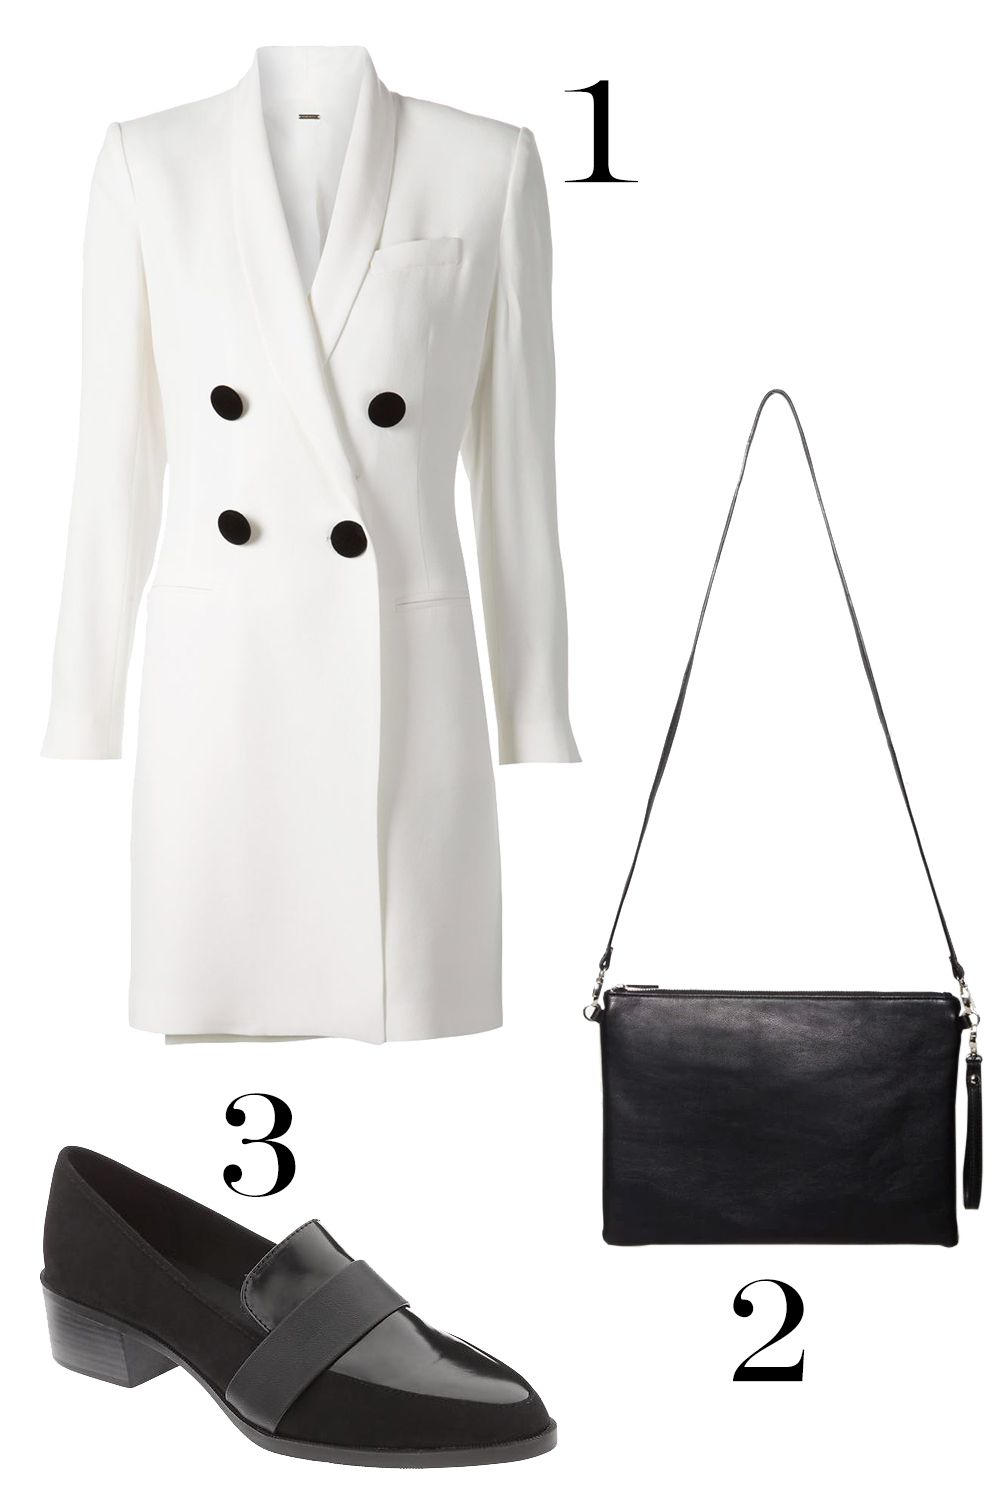 "<p>1. Adam lipped Double Breasted Blazer Dress, $1, 450; <a href=""http://www.farfetch.com/shopping/item11067021.aspx"" target=""_blank"">farfetch.com</a>.</p><p>2. Forever 21 Oversized Crossbody Pouch, $15.90;<a href=""http://www.forever21.com/Product/Product.aspx?br=F21&category=ACC&productid=1000130533"" target=""_blank"">forever21.com</a>.</p><p>3. Old Navy Block-Heel Loafers, $29.94; <a href=""http://oldnavy.gap.com/browse/product.do?cid=55150&vid=1&pid=597754002"" target=""_blank"">oldnavy.gap.com</a>.</p>"